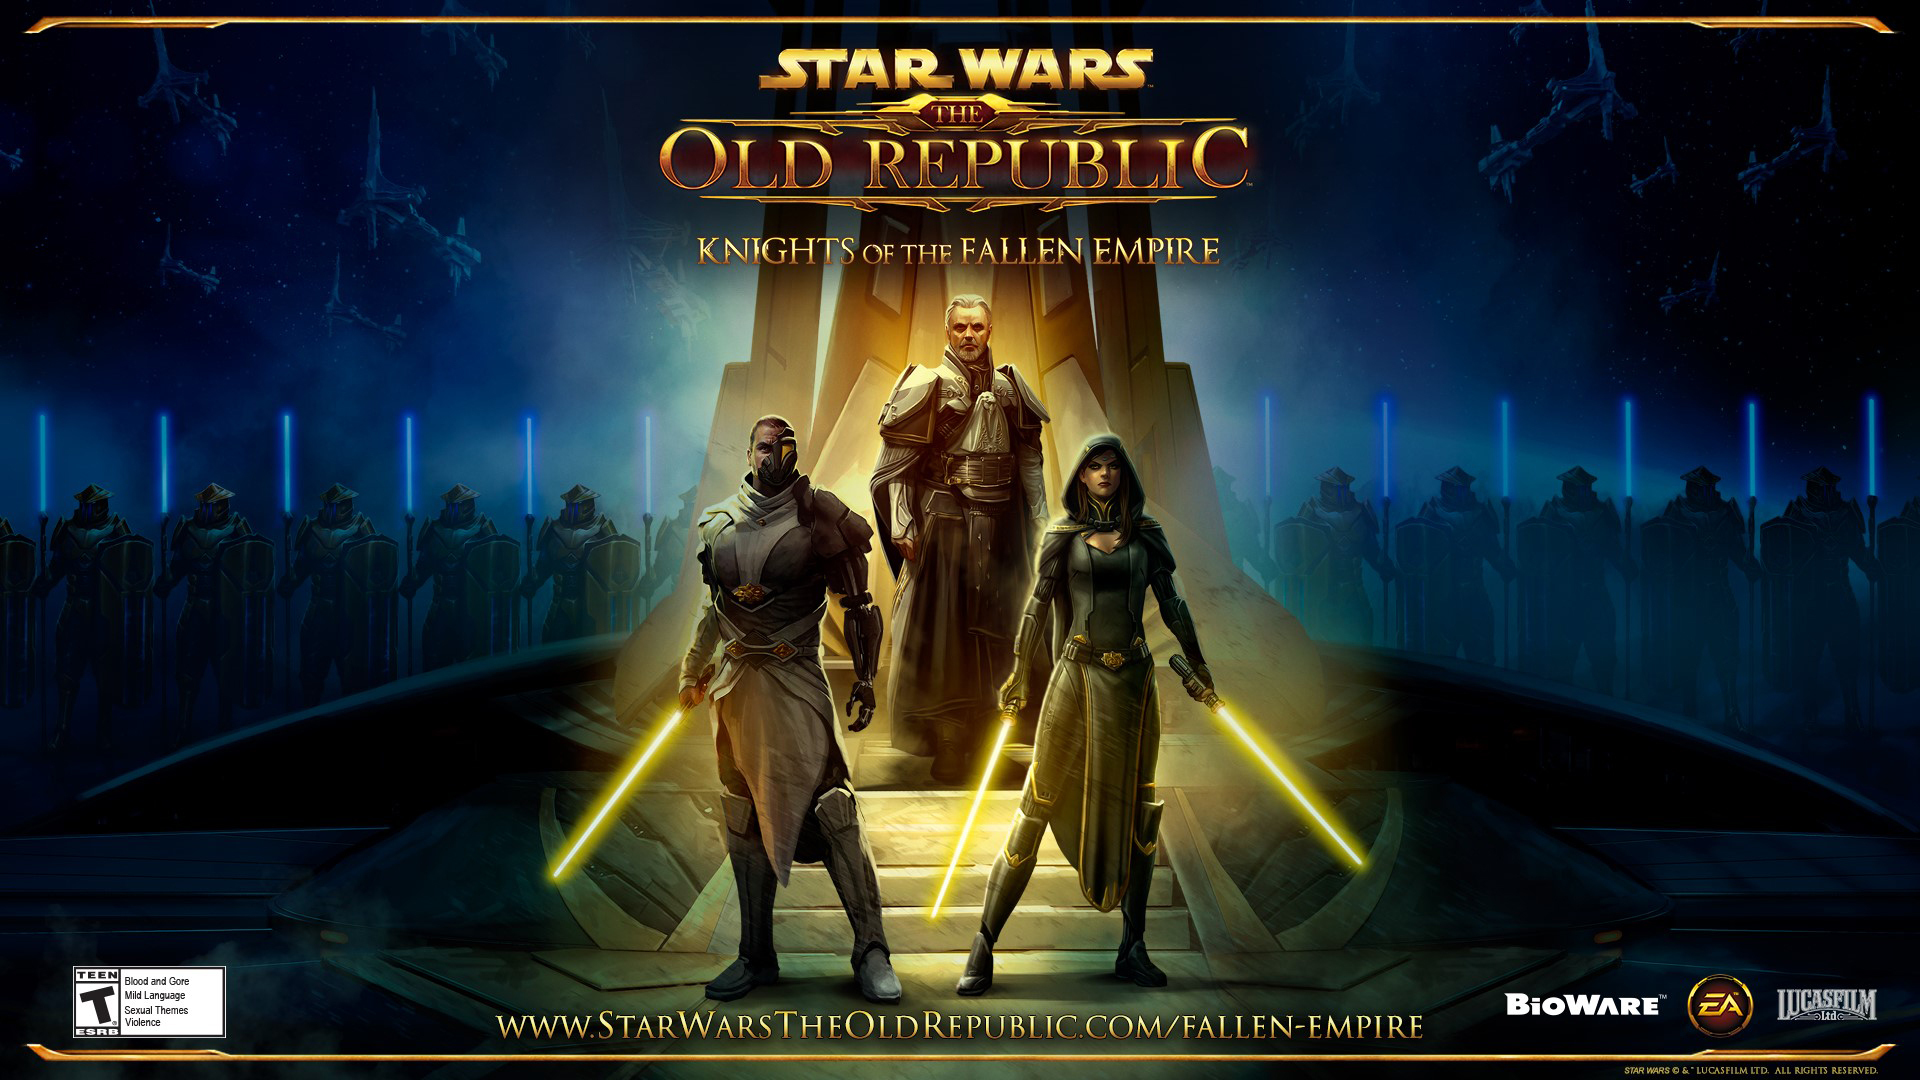 CREDITS - SWTOR - Star Wars: The Old Republic